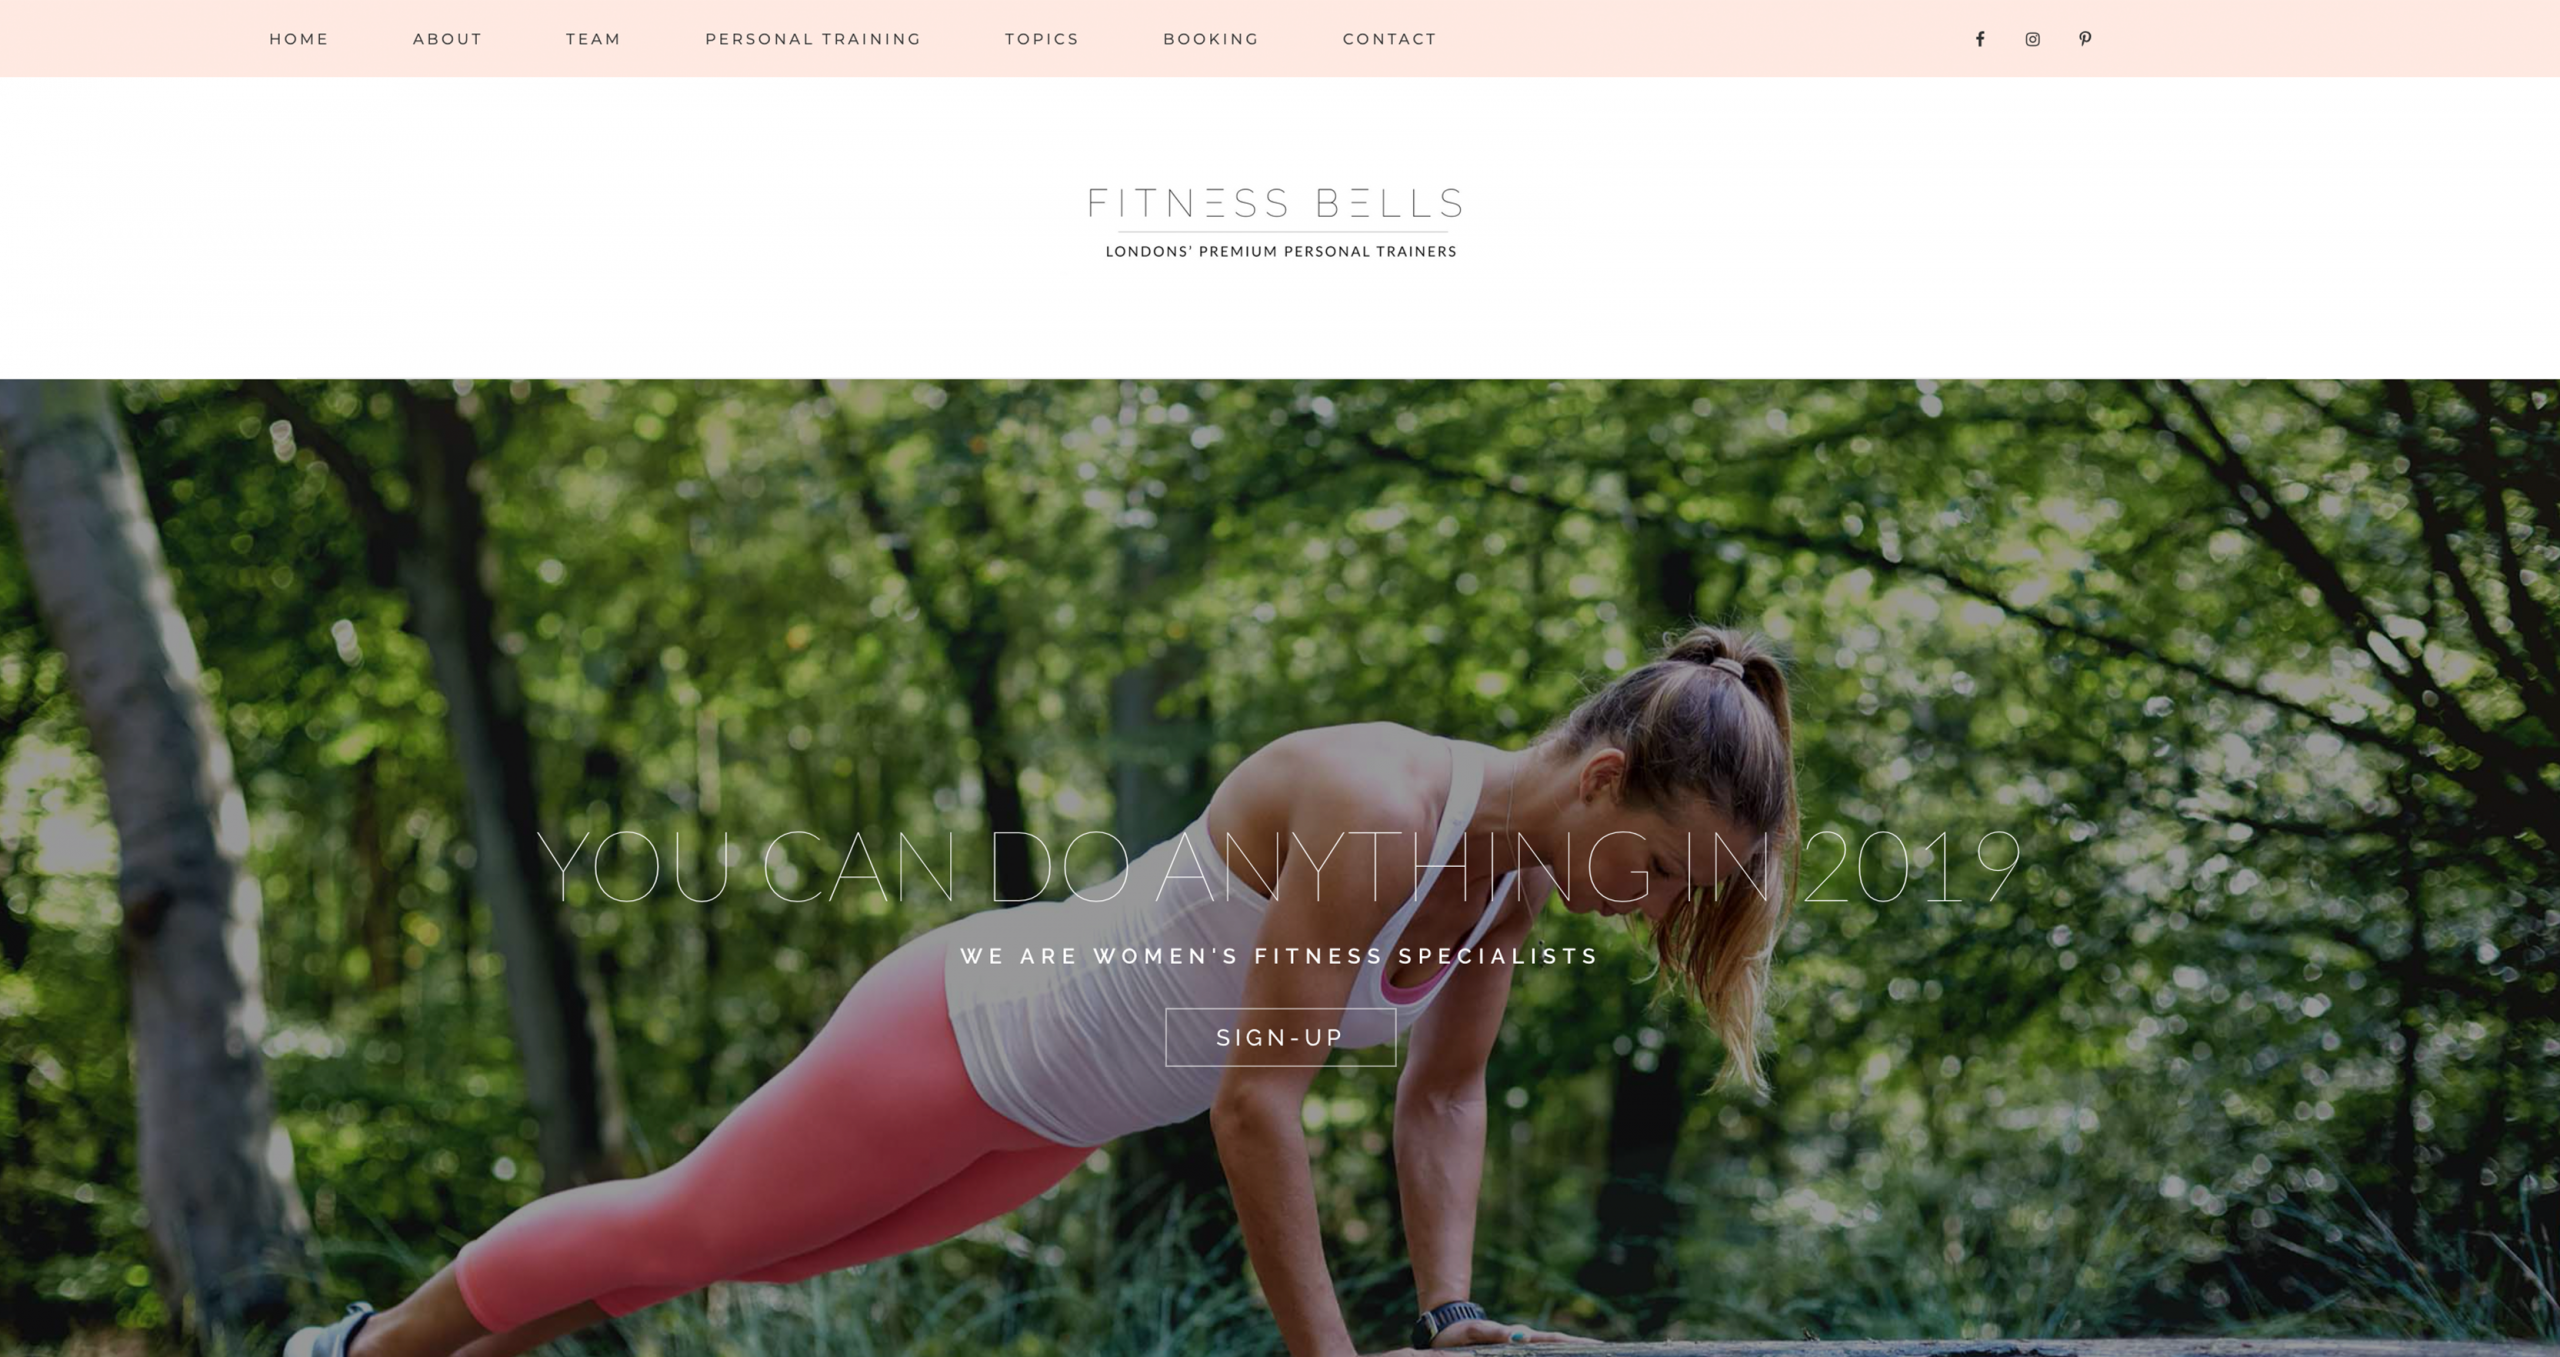 WordPress Website For Personal Trainer in London